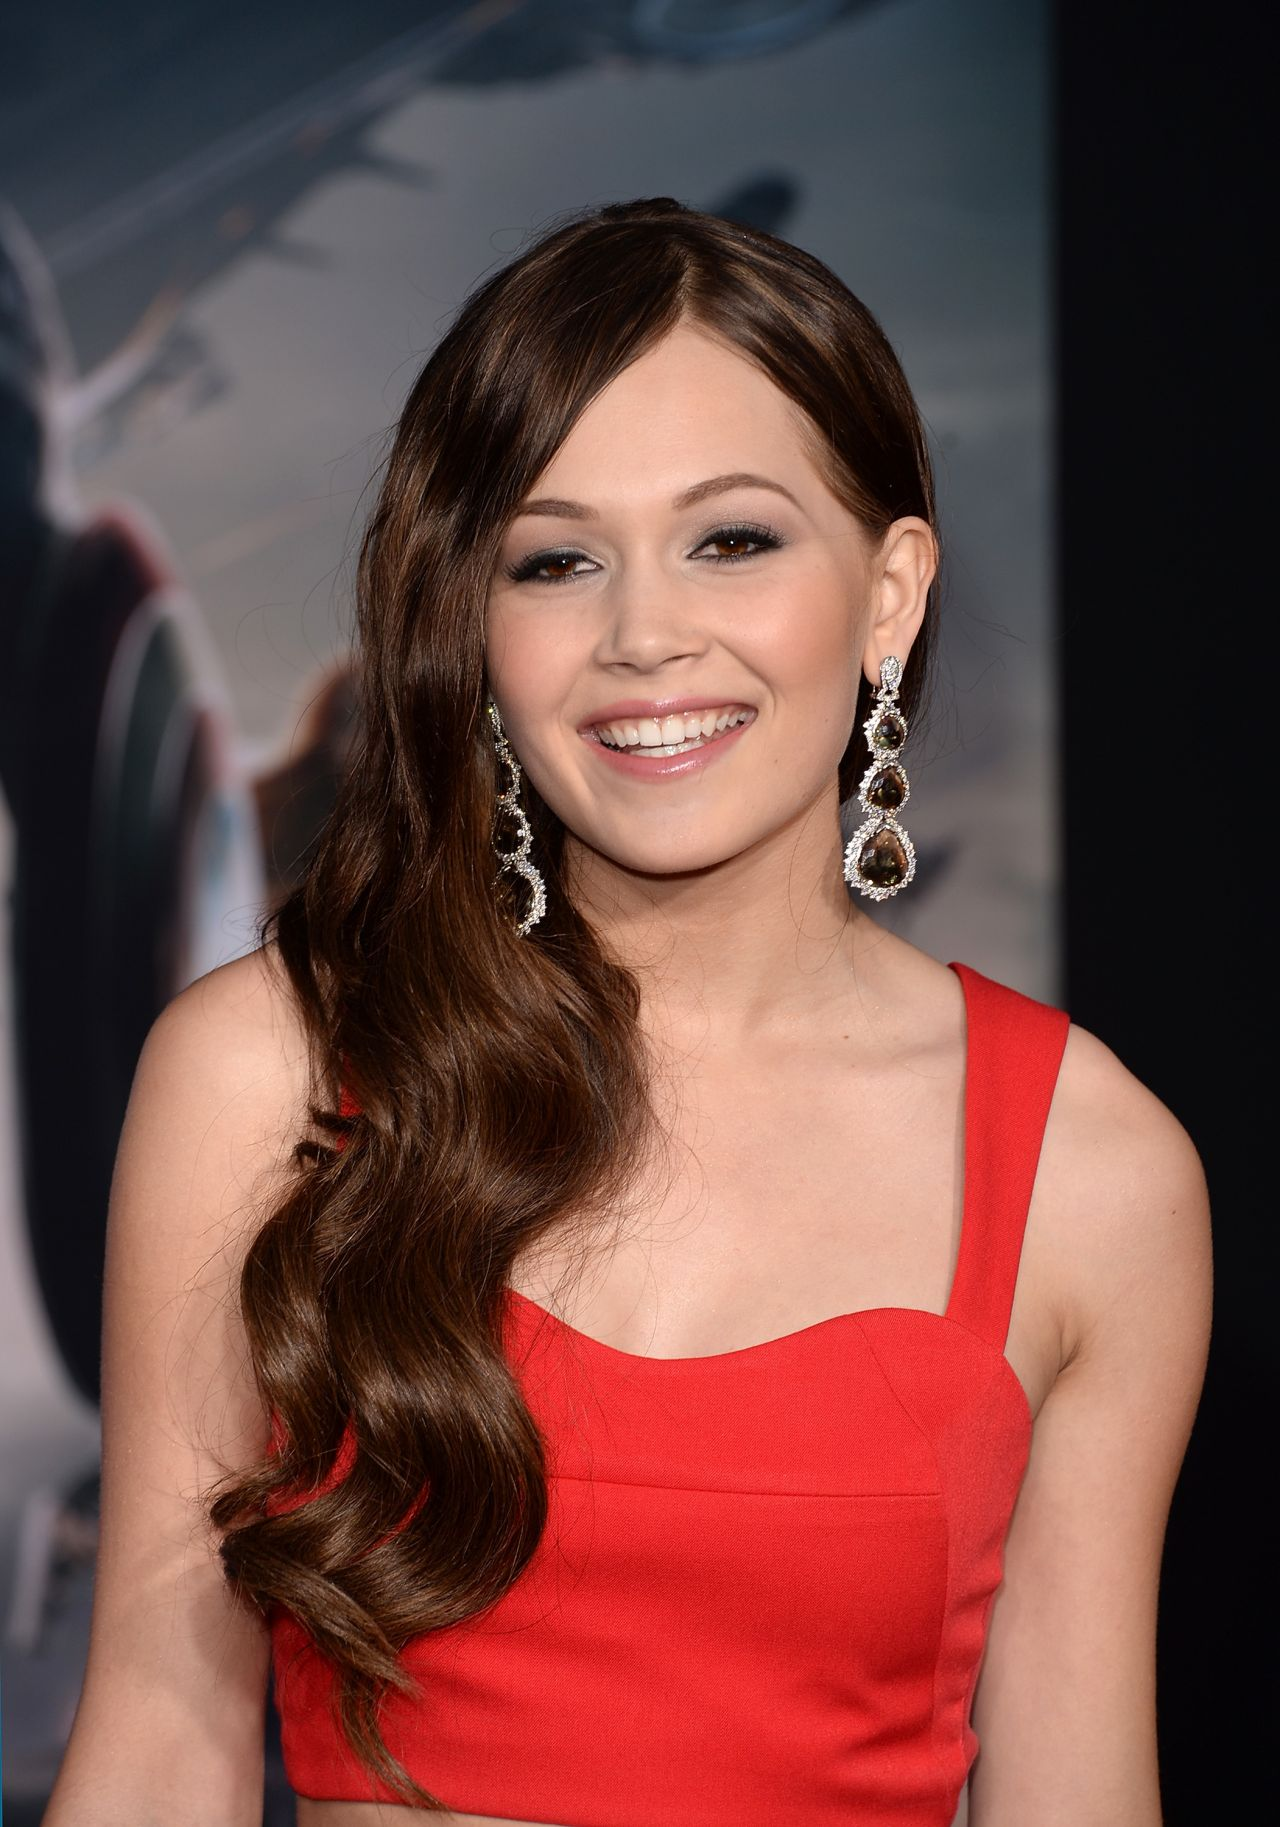 Kelli Berglund Captain America The Winter Soldier